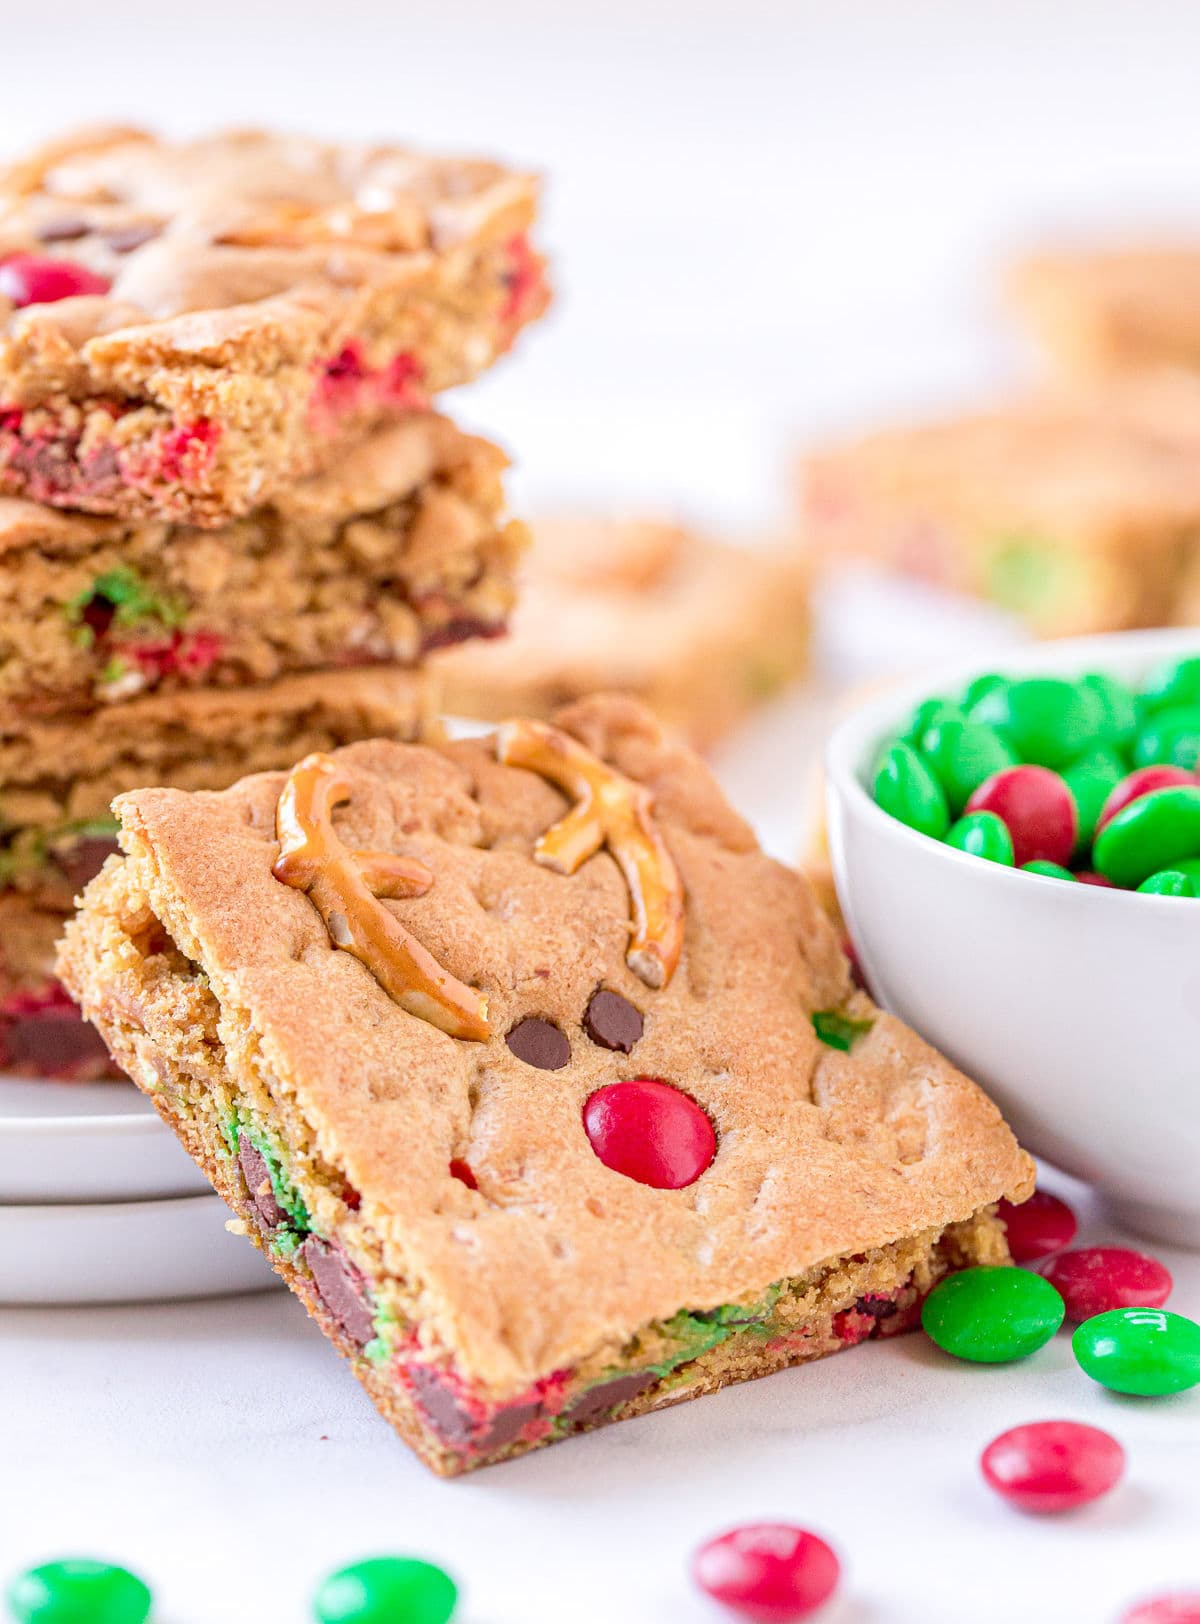 cookie bar leaned up against white plate with more cookie bars stacked on it and sitting next to a white bowl filled with red and green M&Ms